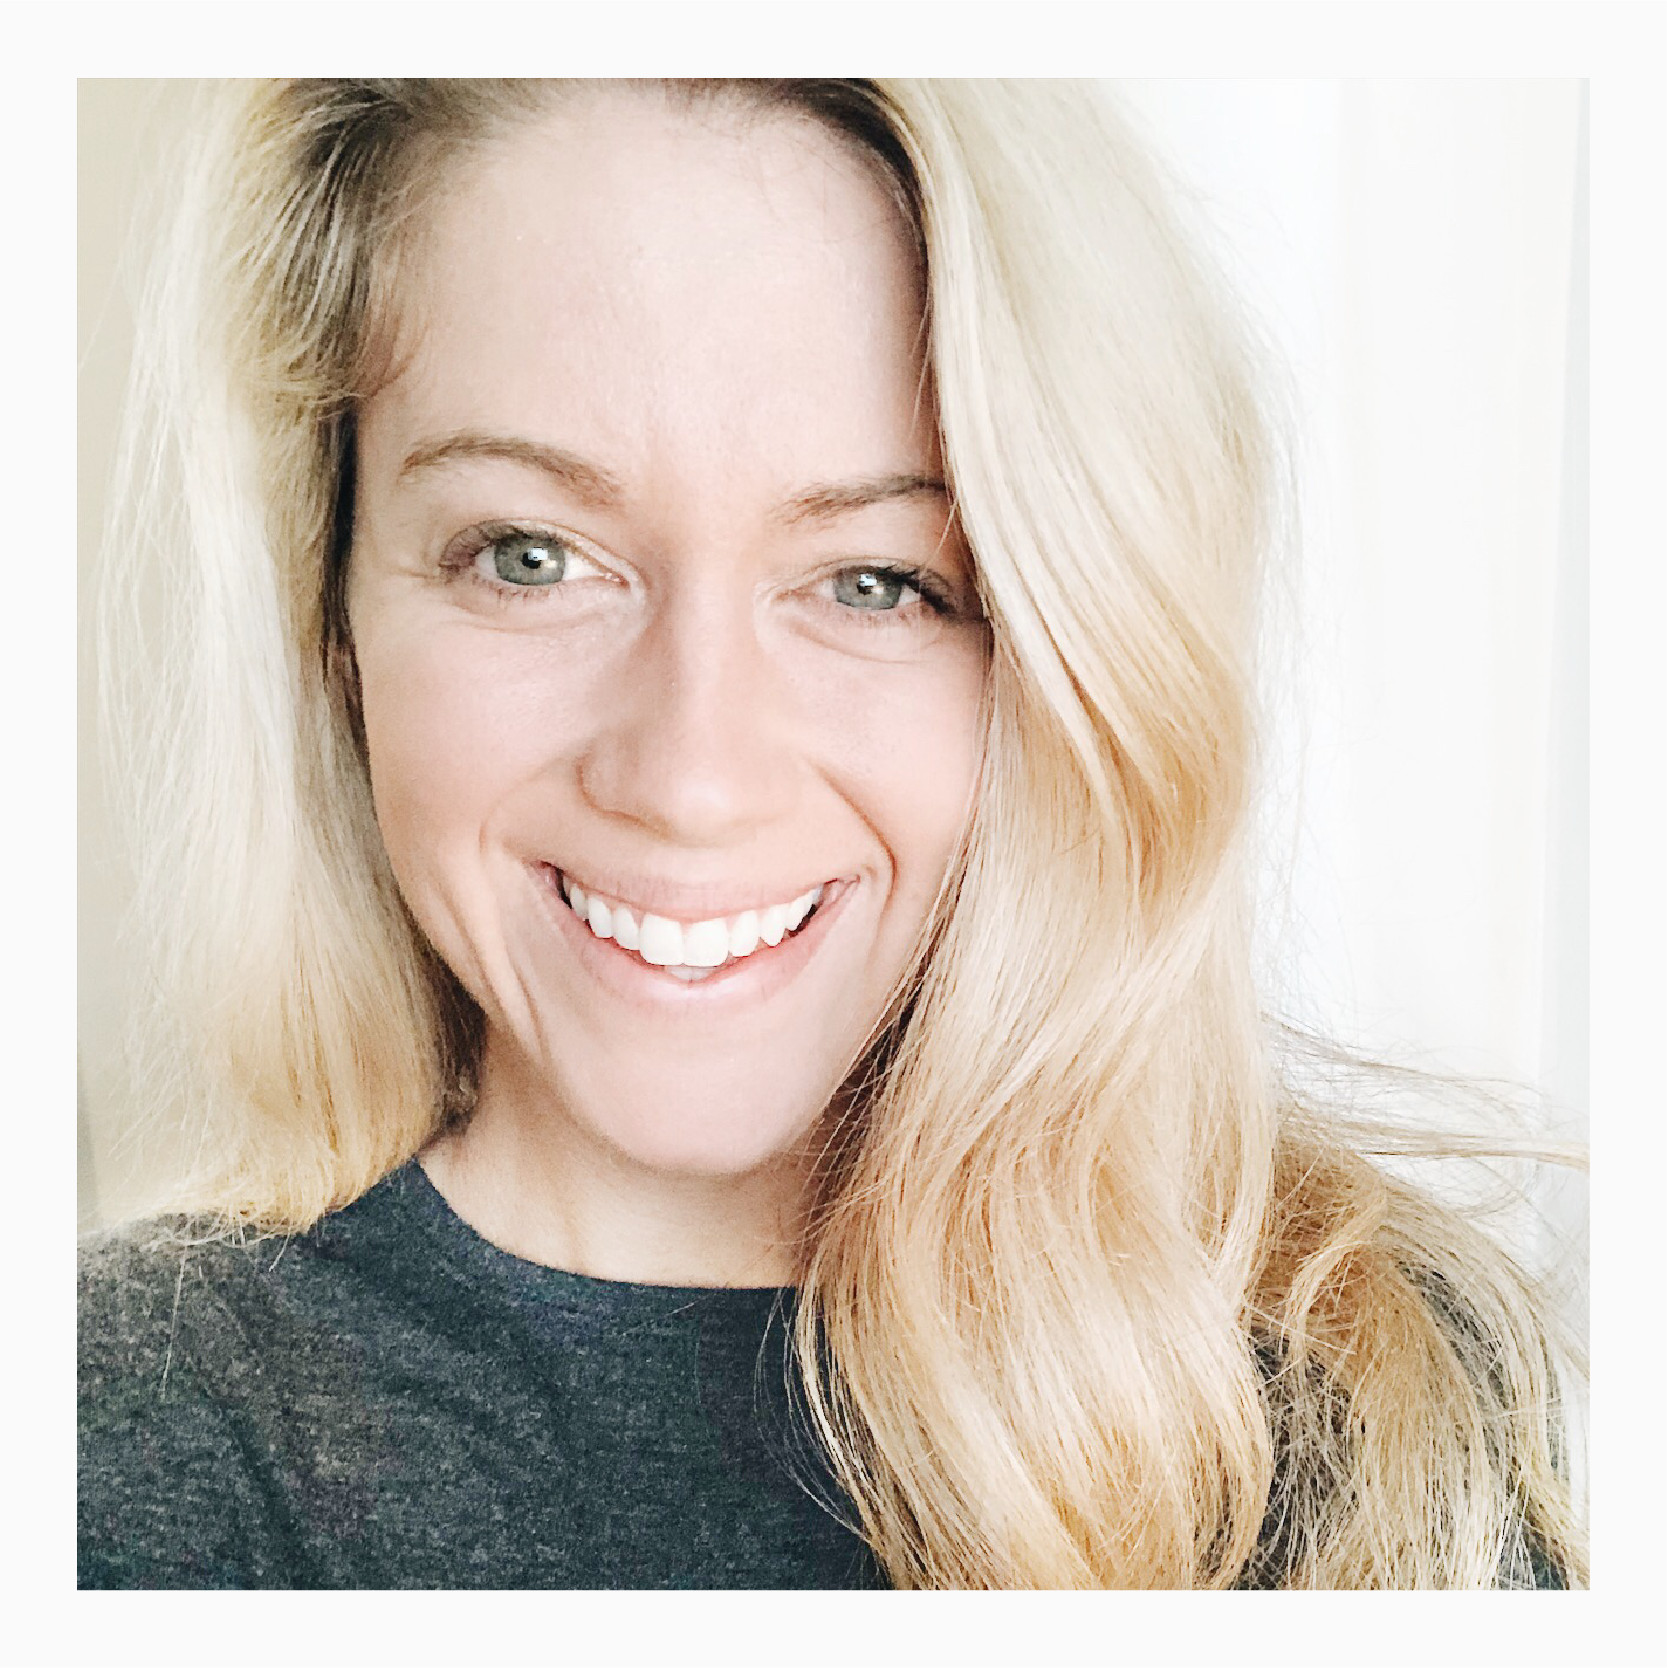 Emma Rose Company is a Squarespace website designer and photographer who primarily works with photographers to help them reach their business goals through thoughtful design.